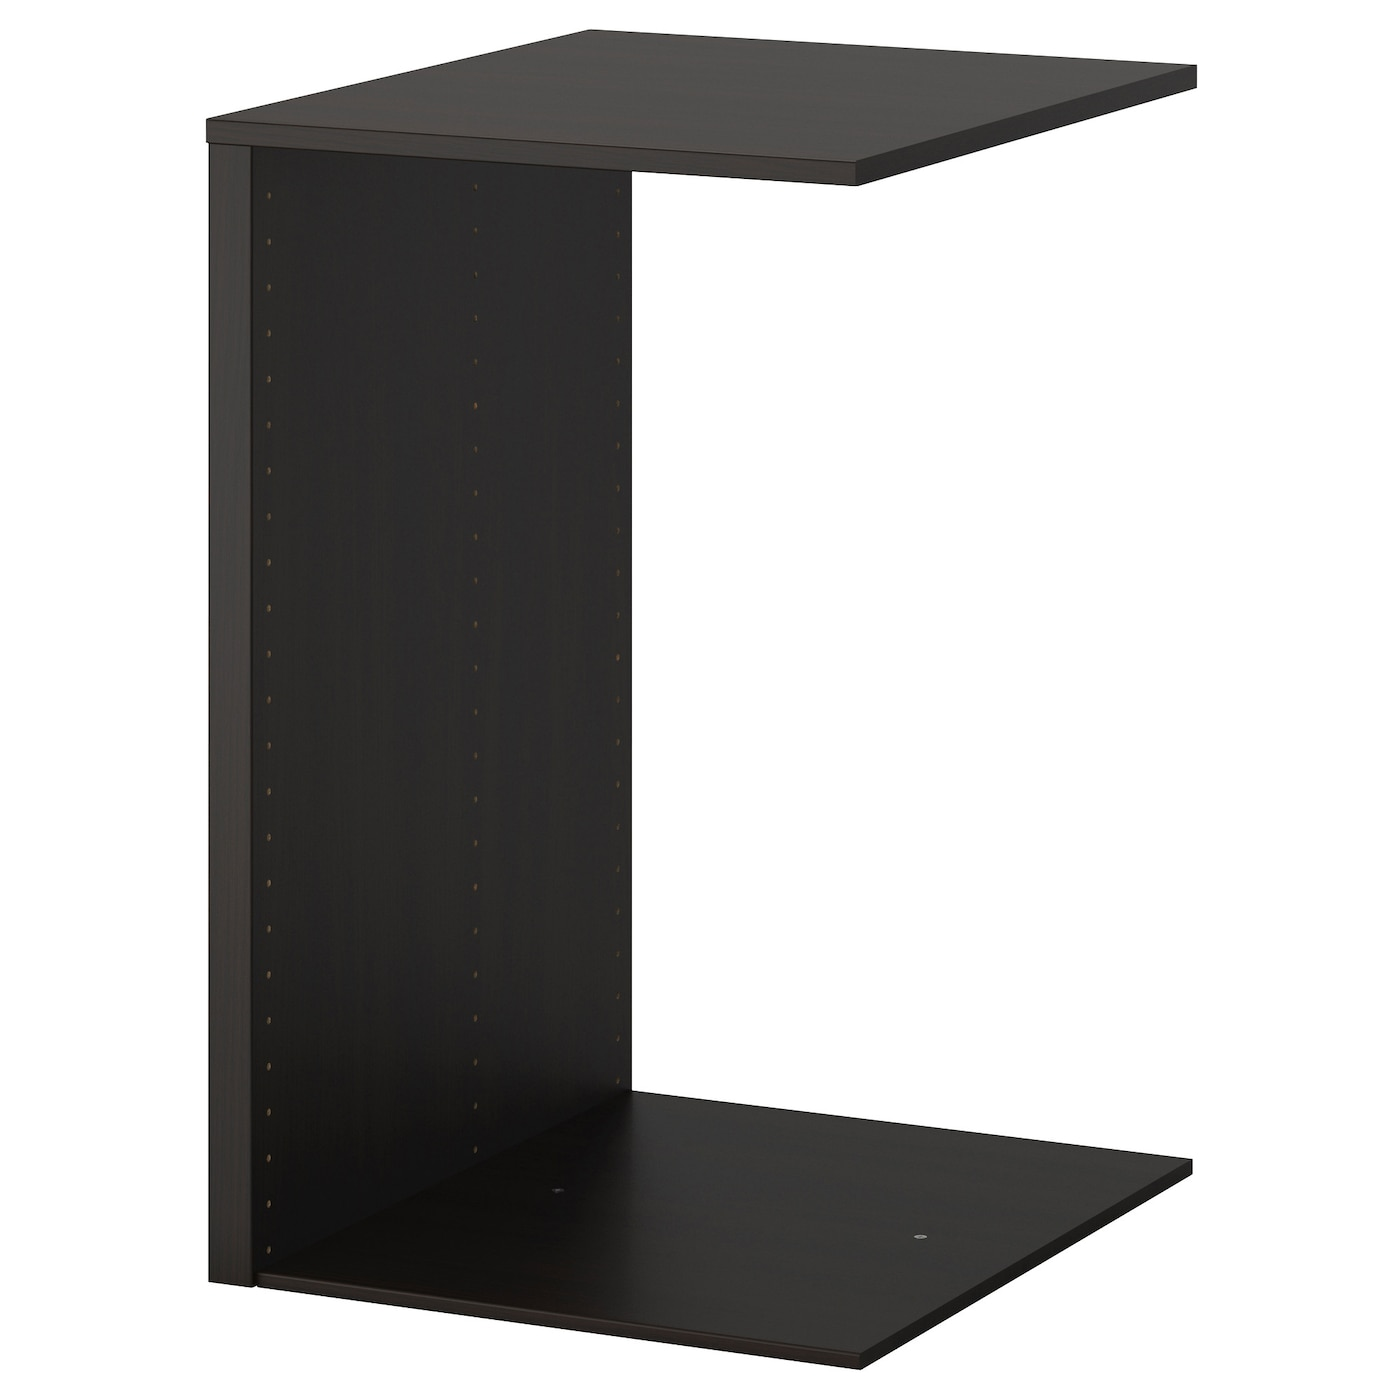 Komplement divider for frames black brown 75 100x58 cm ikea for Ikea complementi